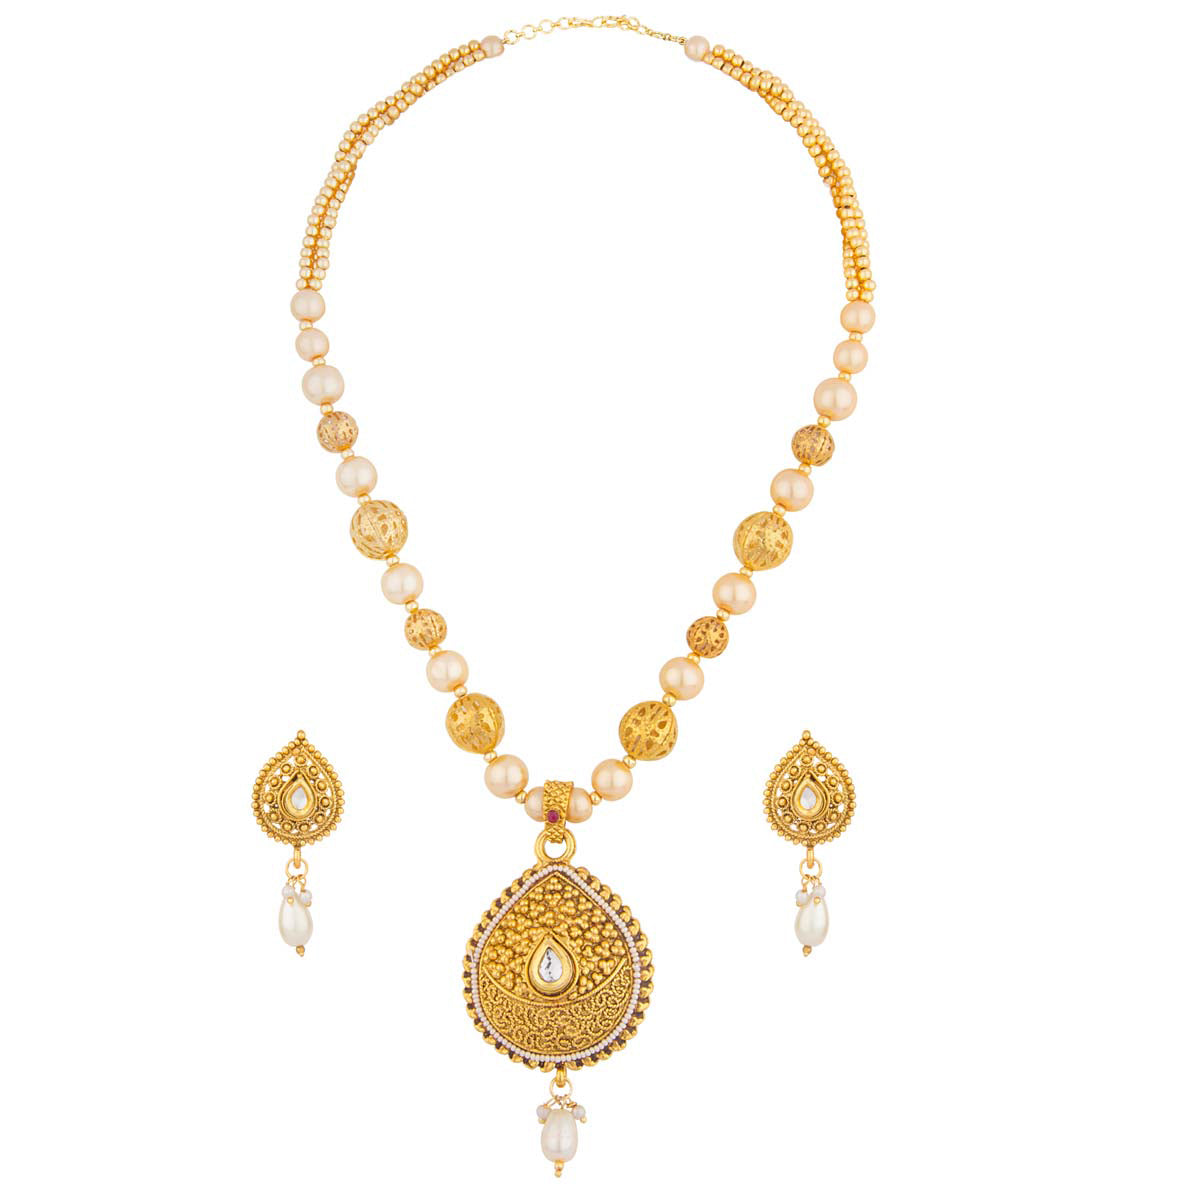 Pearls and gold string together give way to a traditional golf filigree pear-shaped pendant in this piece. It comes with matching earrings with pearl drops to complete your look.